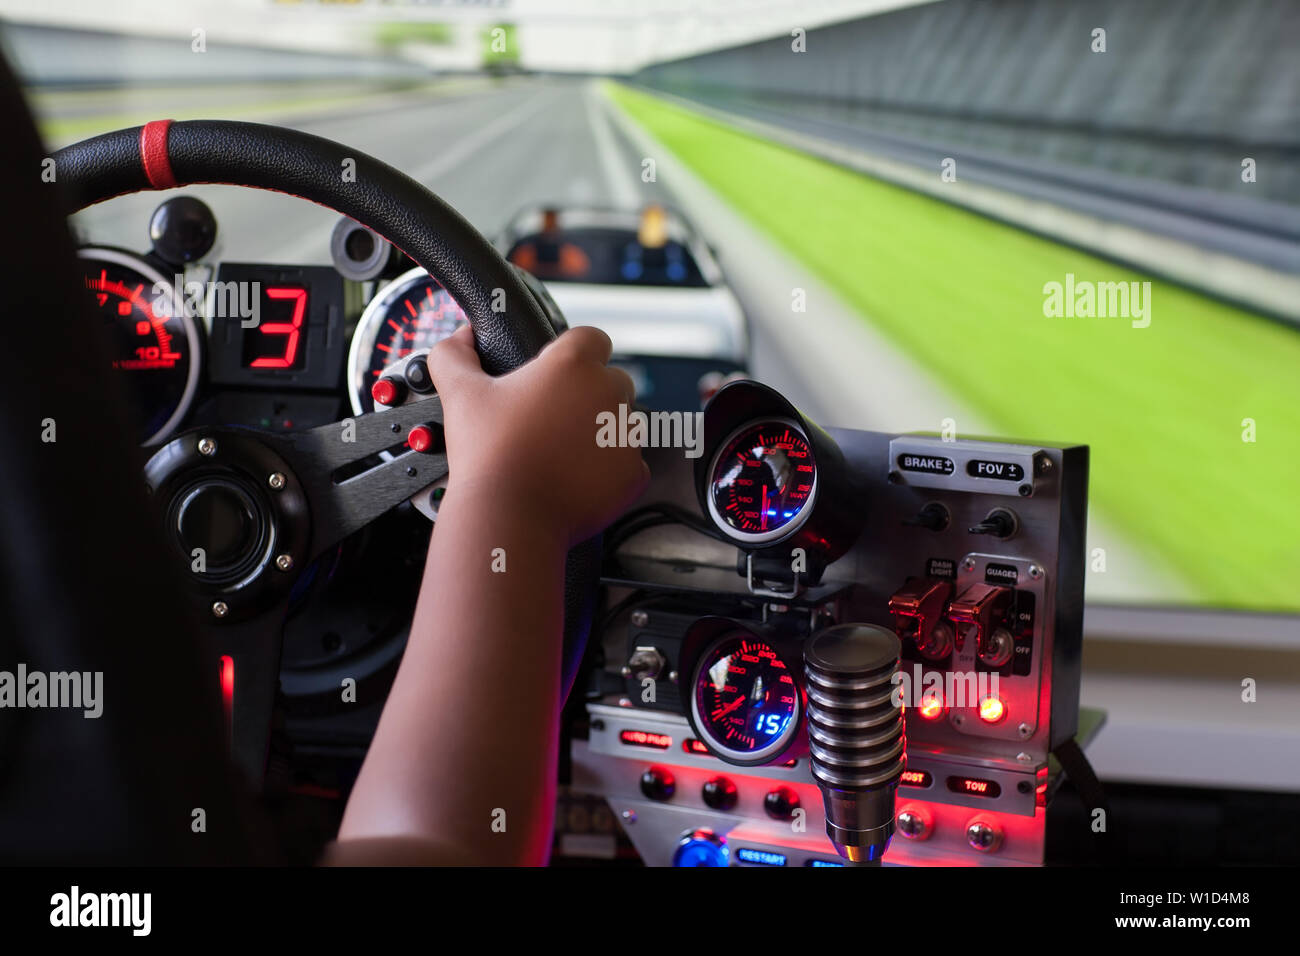 Racing Simulation Stock Photos & Racing Simulation Stock Images - Alamy